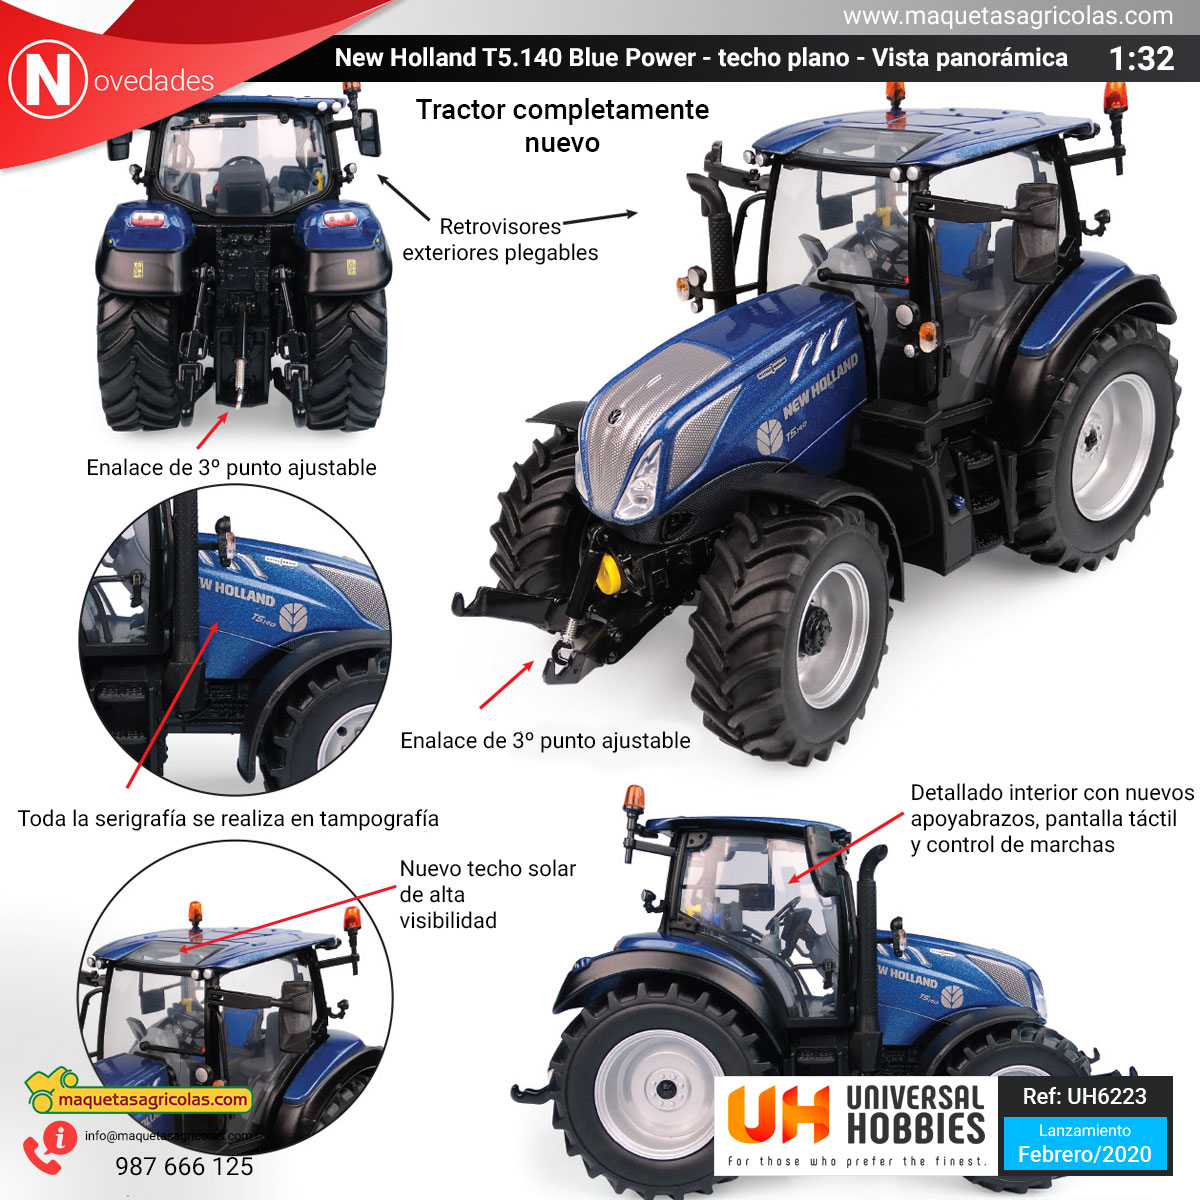 New Holland T5.140 Blue Power con techo panorámico